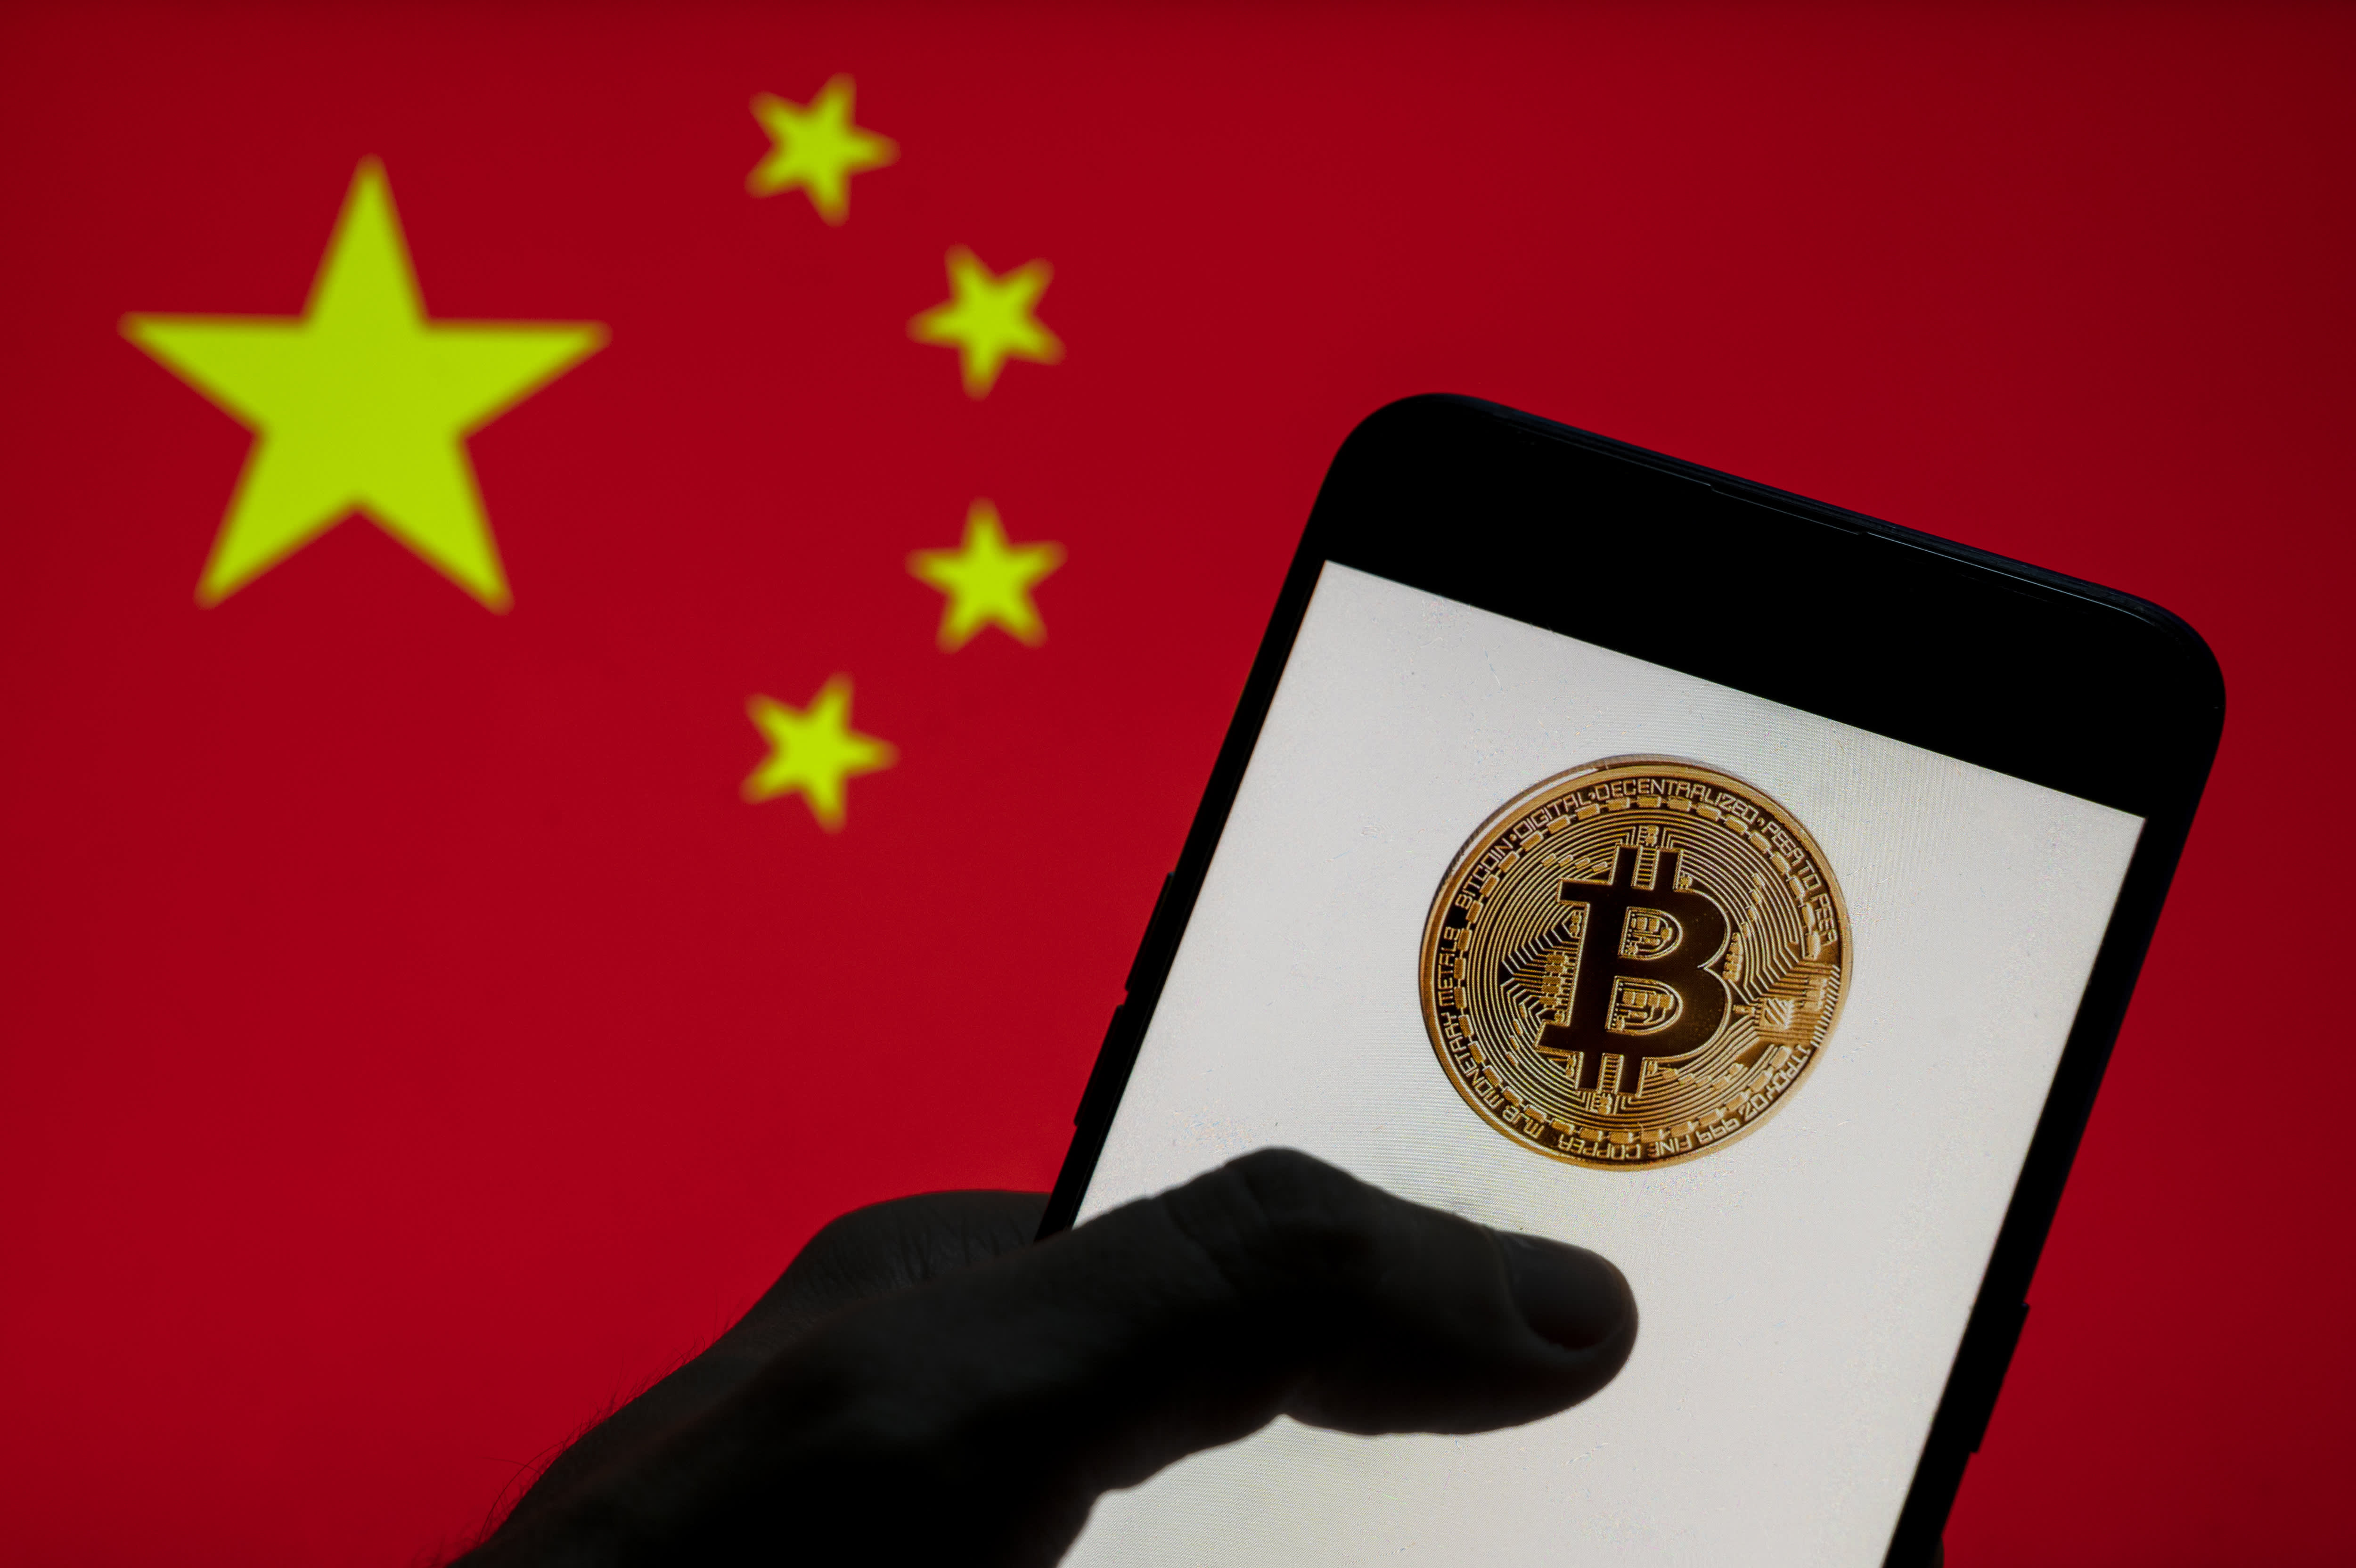 China's central bank says all cryptocurrency-related activities are illegal, vows harsh crackdown